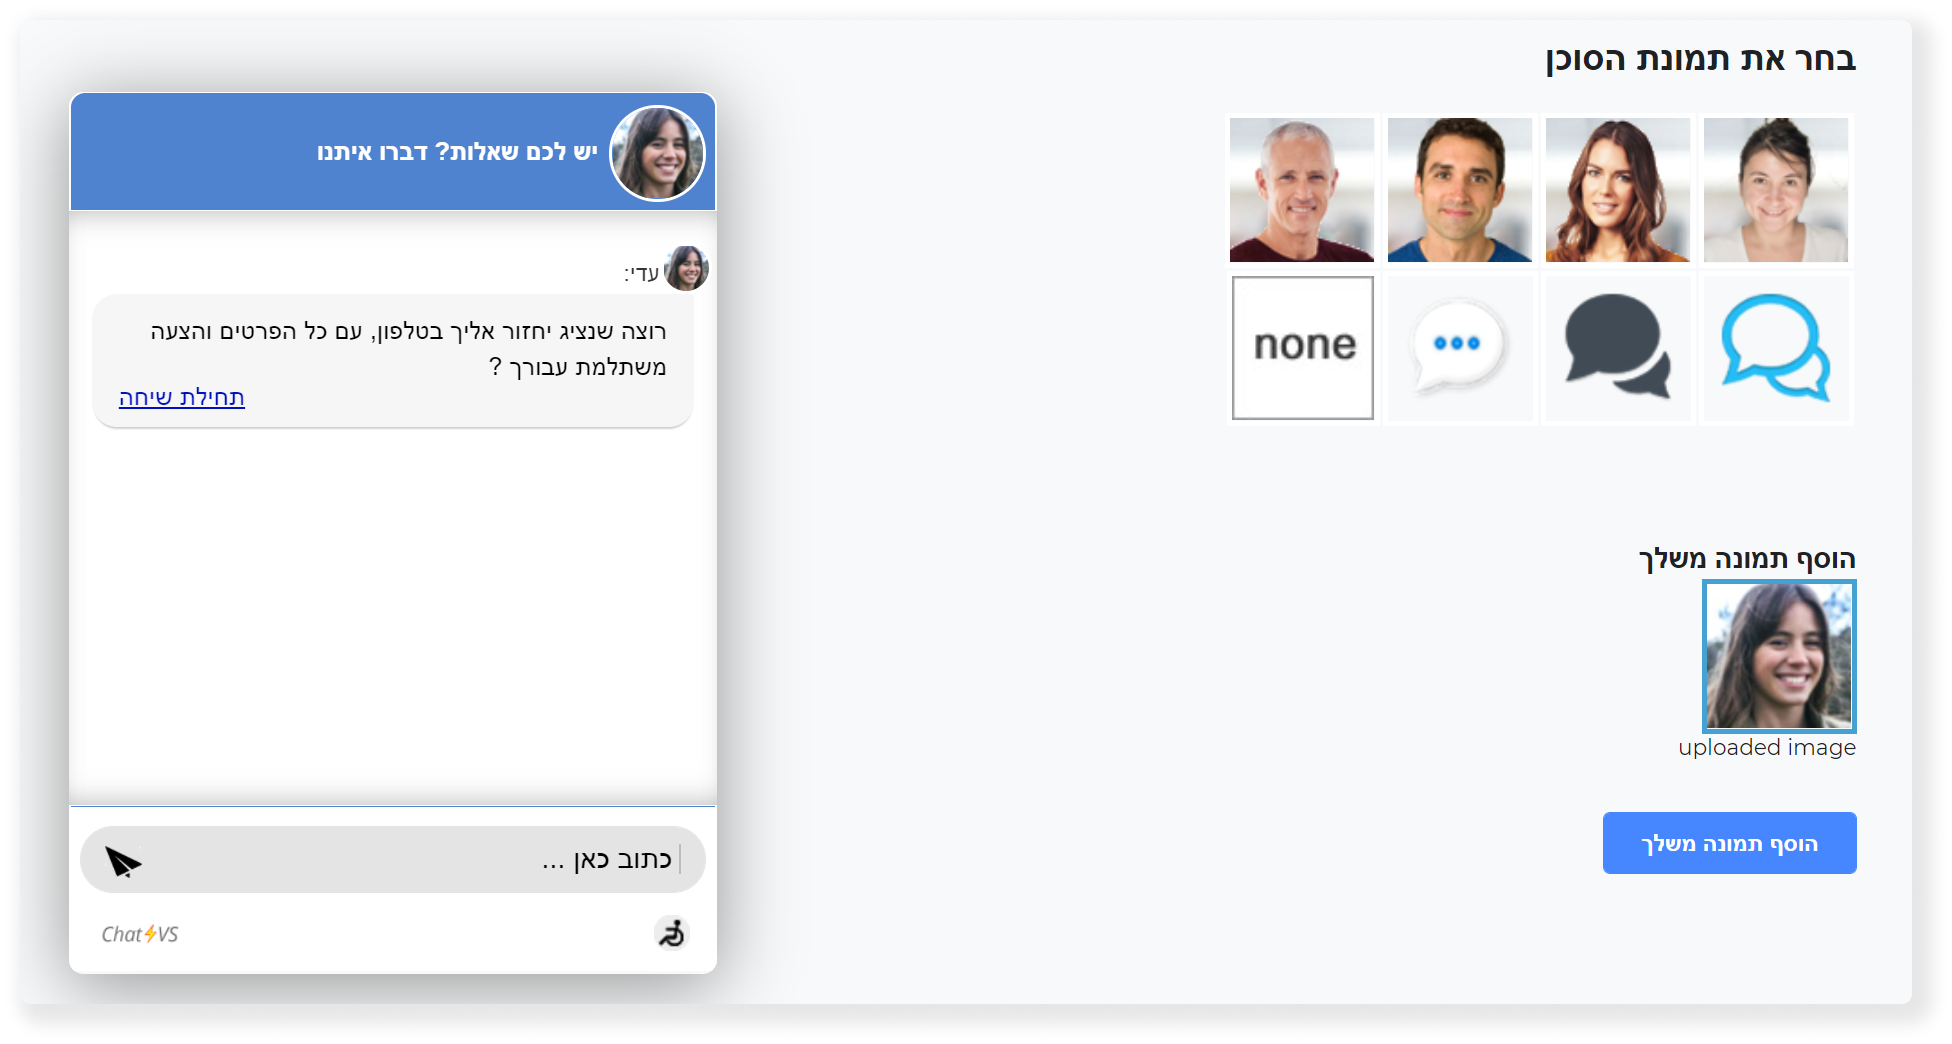 changing chatbot agent image